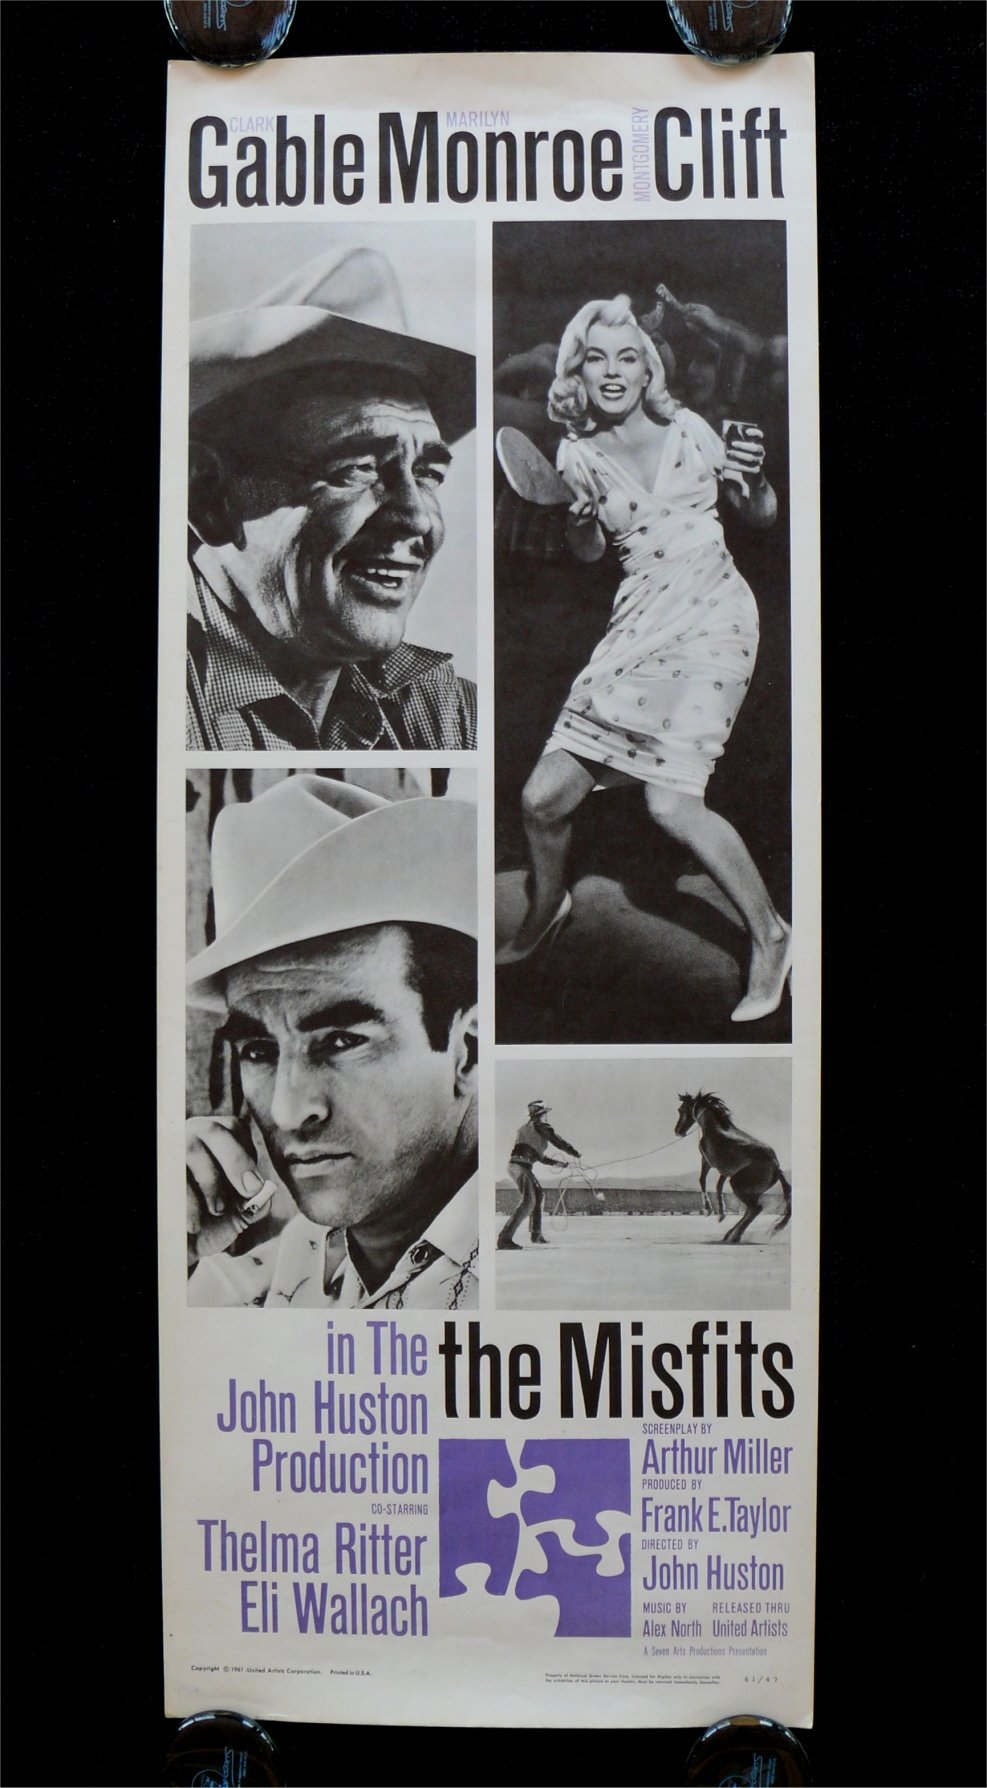 imagemaking celebrated at joslyn the misfits and magnum cinema consistent miller s ideology the misfits is replete references to the impermanence of things